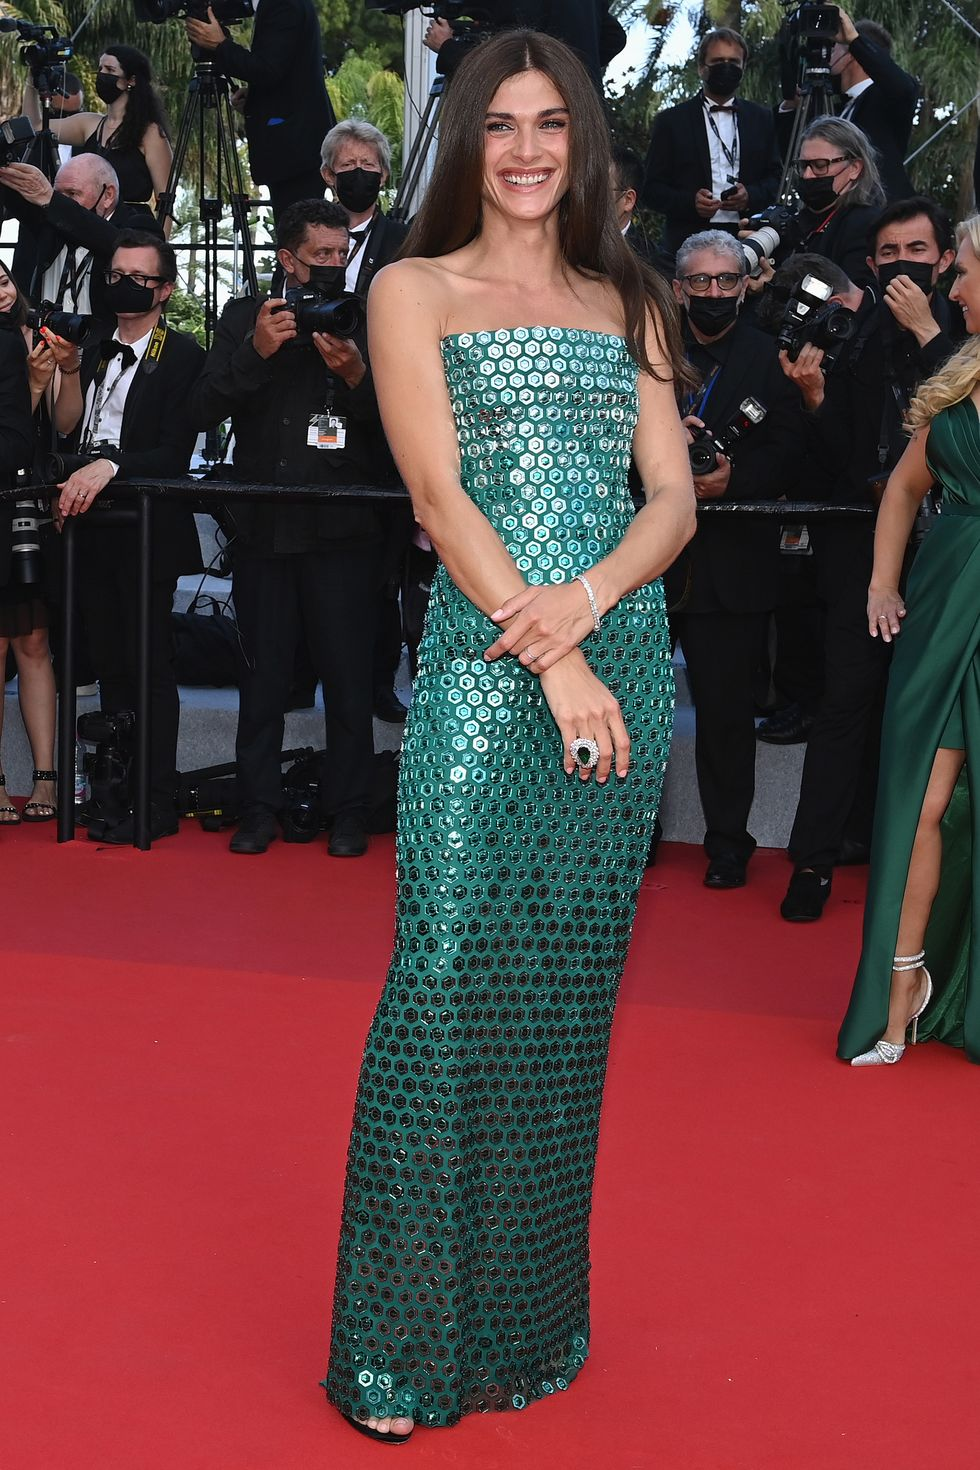 Elisa Sednaoui The model was a true mermaid on the red carpet in a shimmering, foil-covered Alberta Ferretti gown.